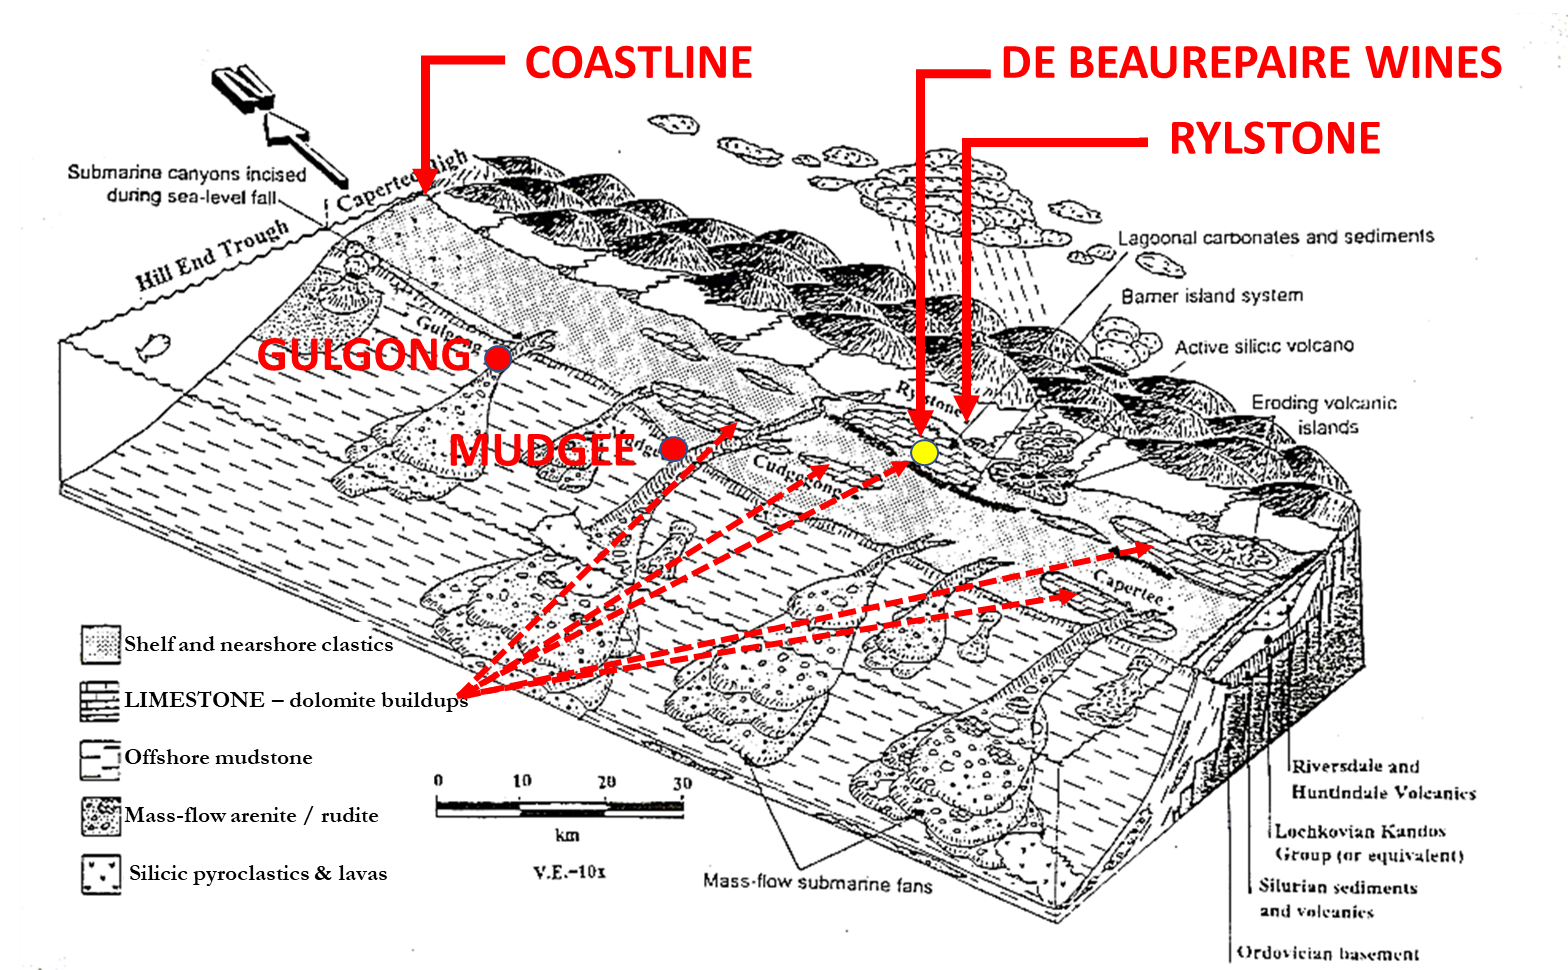 De Beaurepaire Wines Terroir Formation